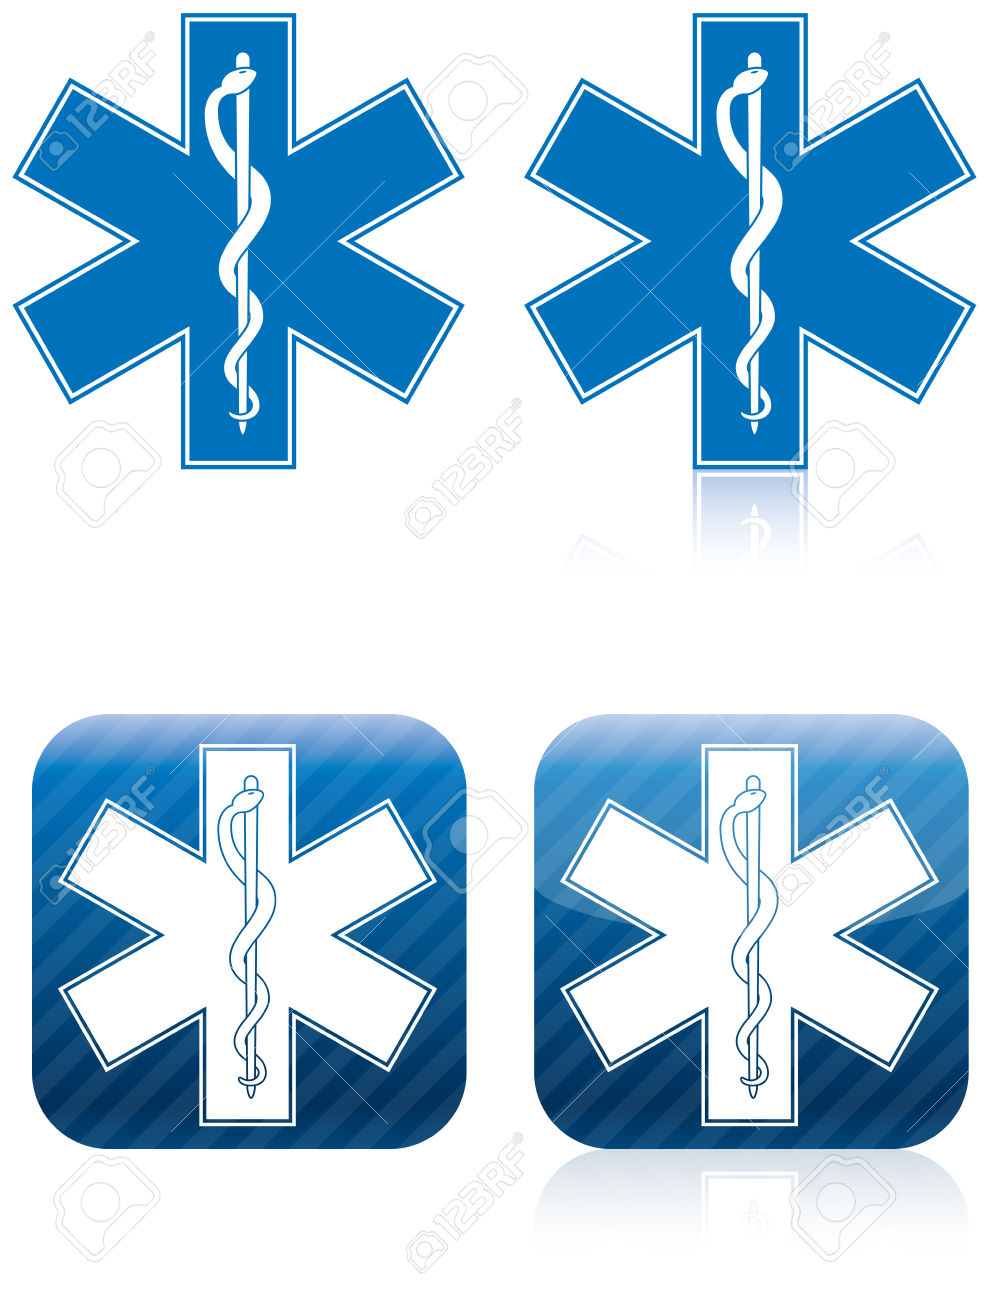 Emergency Medical And Rescue Symbol, Rod Of Asclepius Stock Photo.